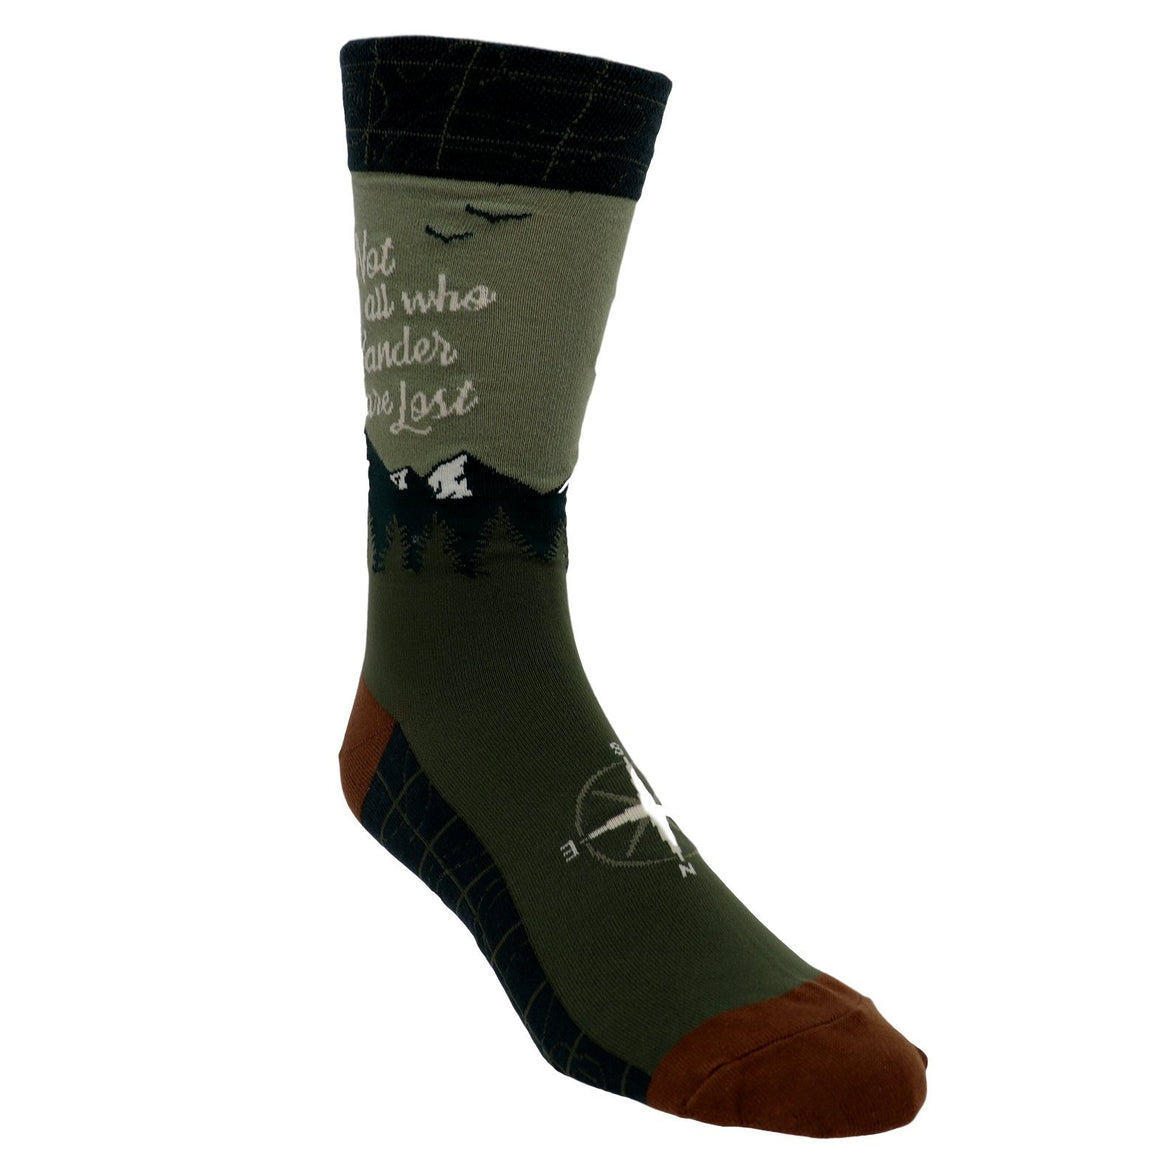 Socks - Not All Who Wander Are Lost Men's Socks By Foot Traffic